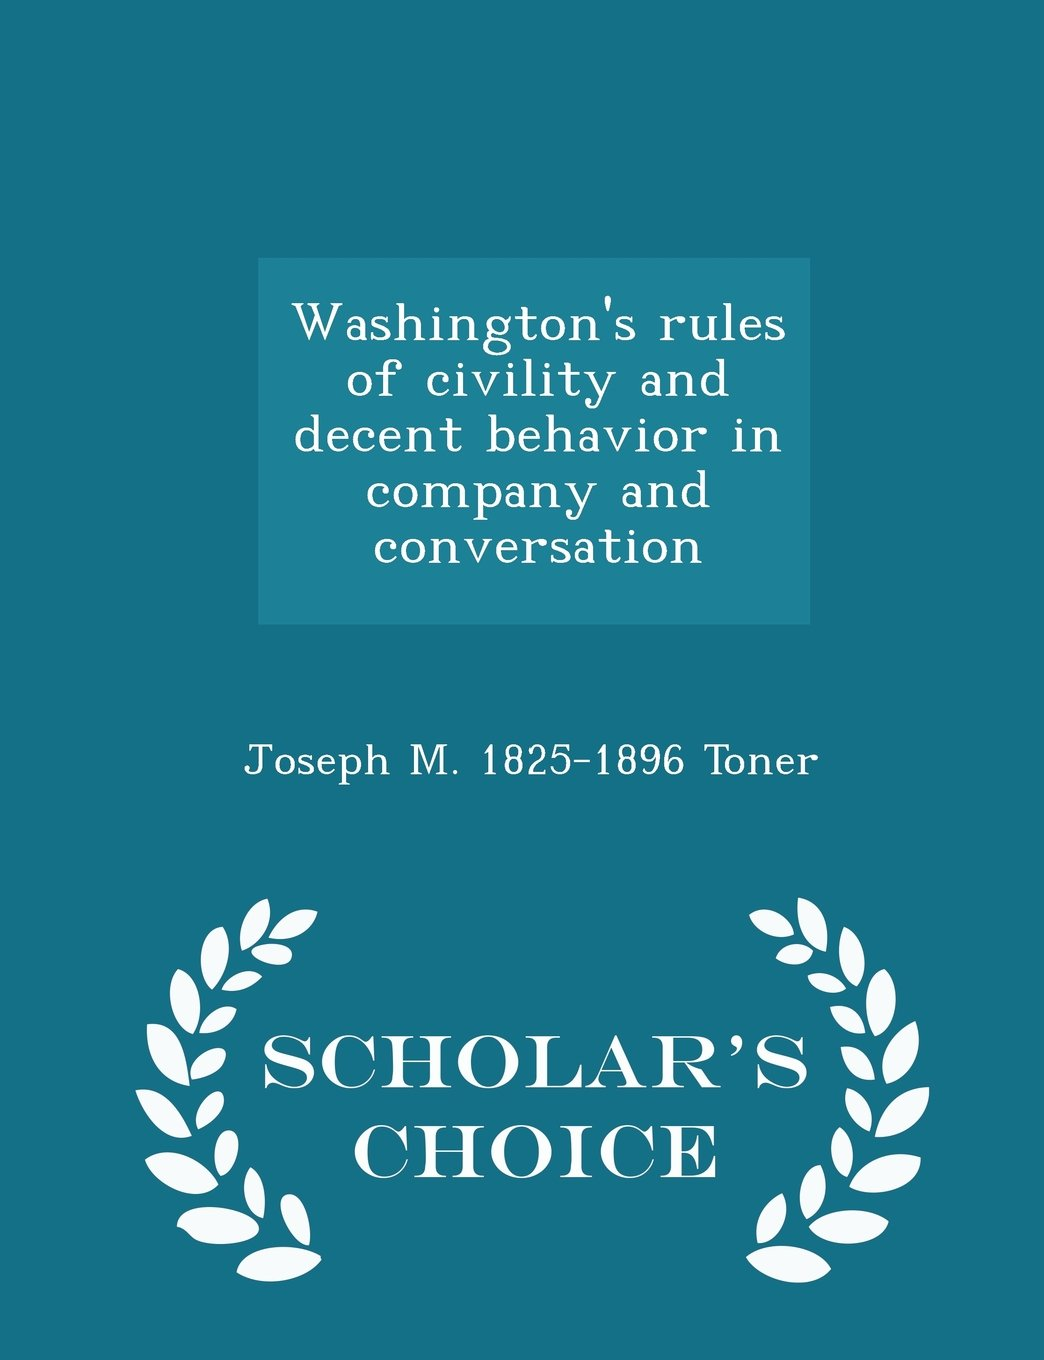 Download Washington's rules of civility and decent behavior in company and conversation  - Scholar's Choice Edition ebook